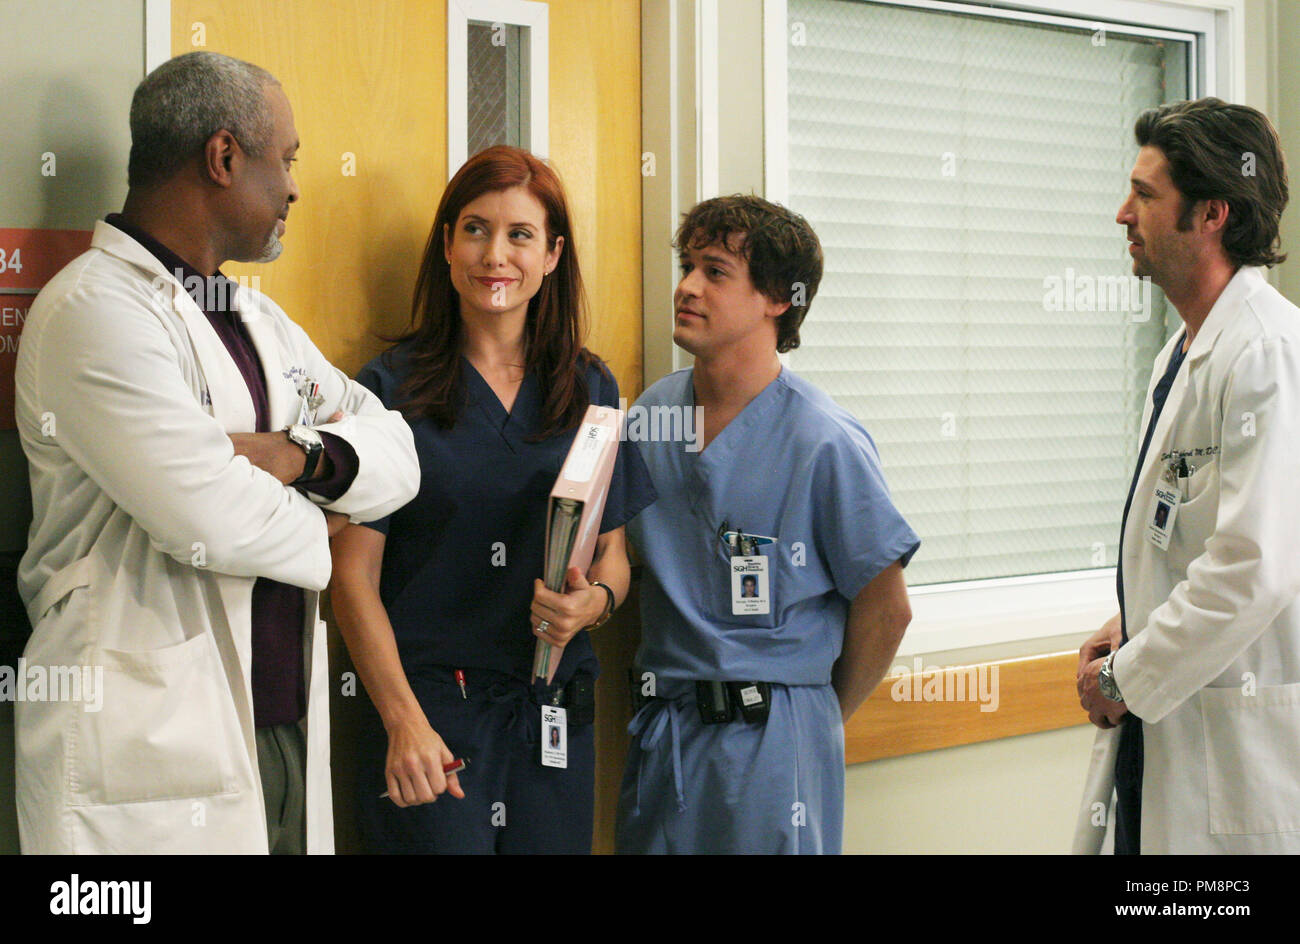 Studio Publicity Still from 'Grey's Anatomy' (Season 2 Episode Name: As We Know It) James Pickens Jr., Kate Walsh, T.R. Knight, Patrick Dempsey 2006 Photo credit: Karen Neal - Stock Image